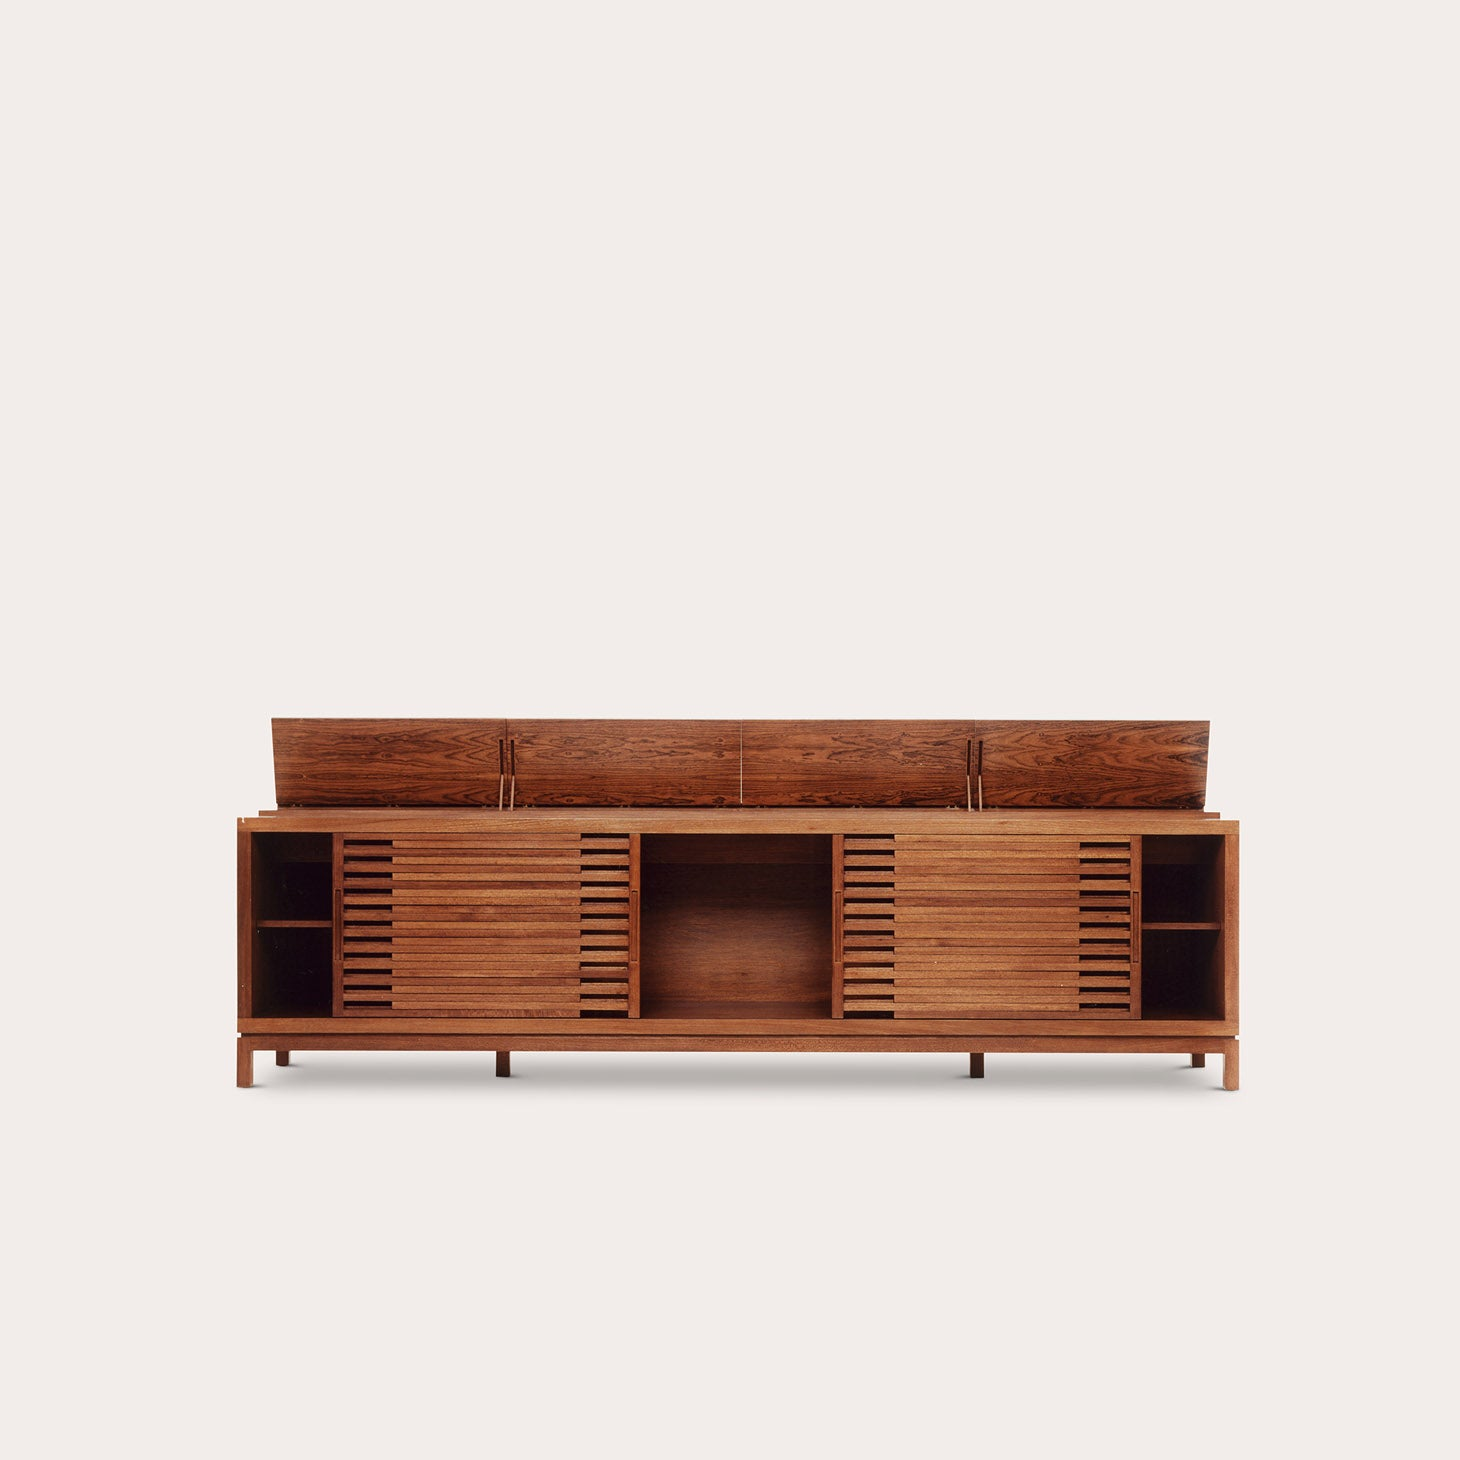 Vila Rica Storage Etel Carmona Designer Furniture Sku: 003-220-10089